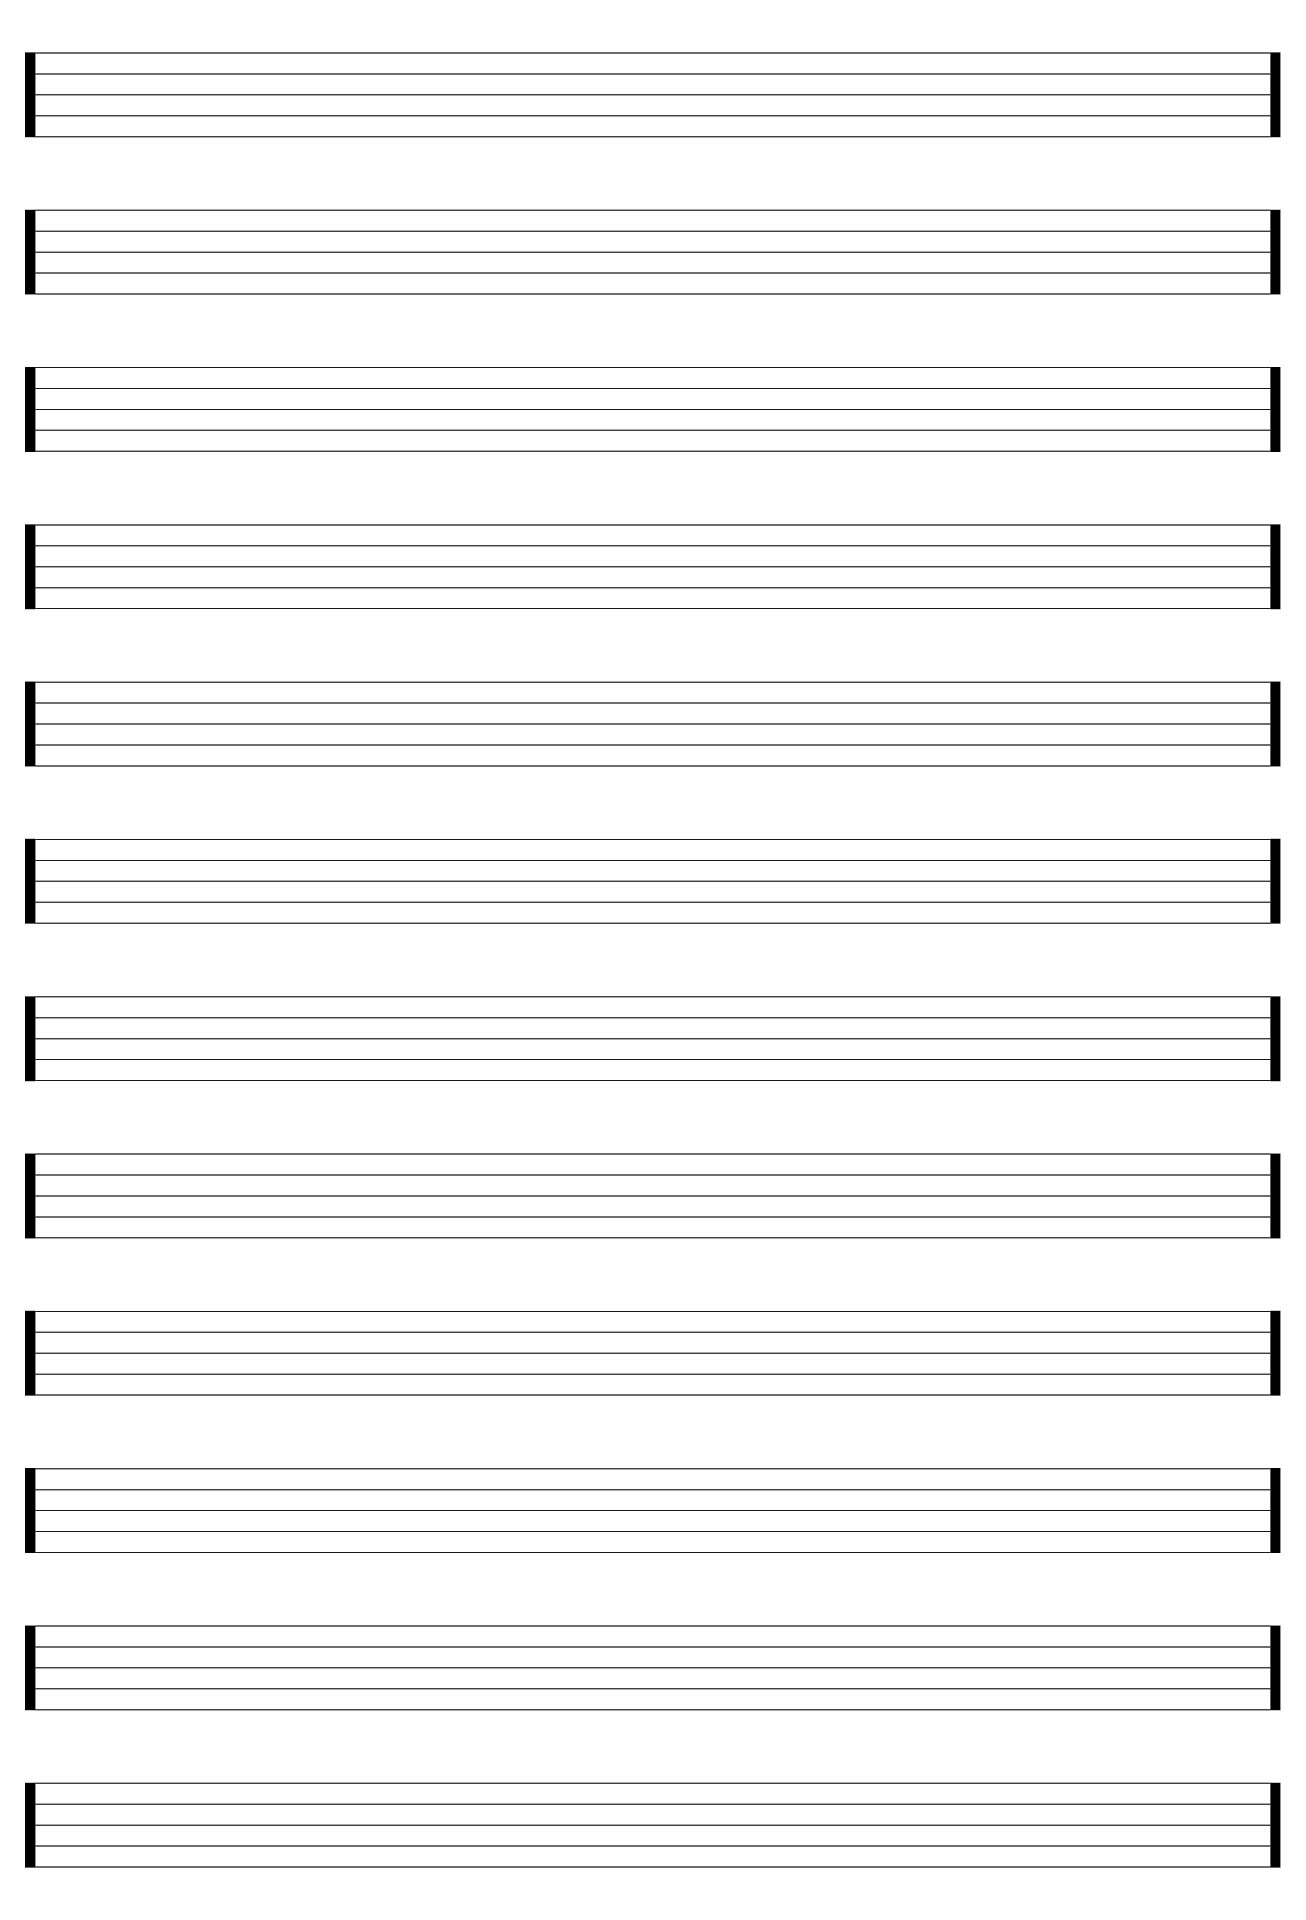 blank music sheet printable